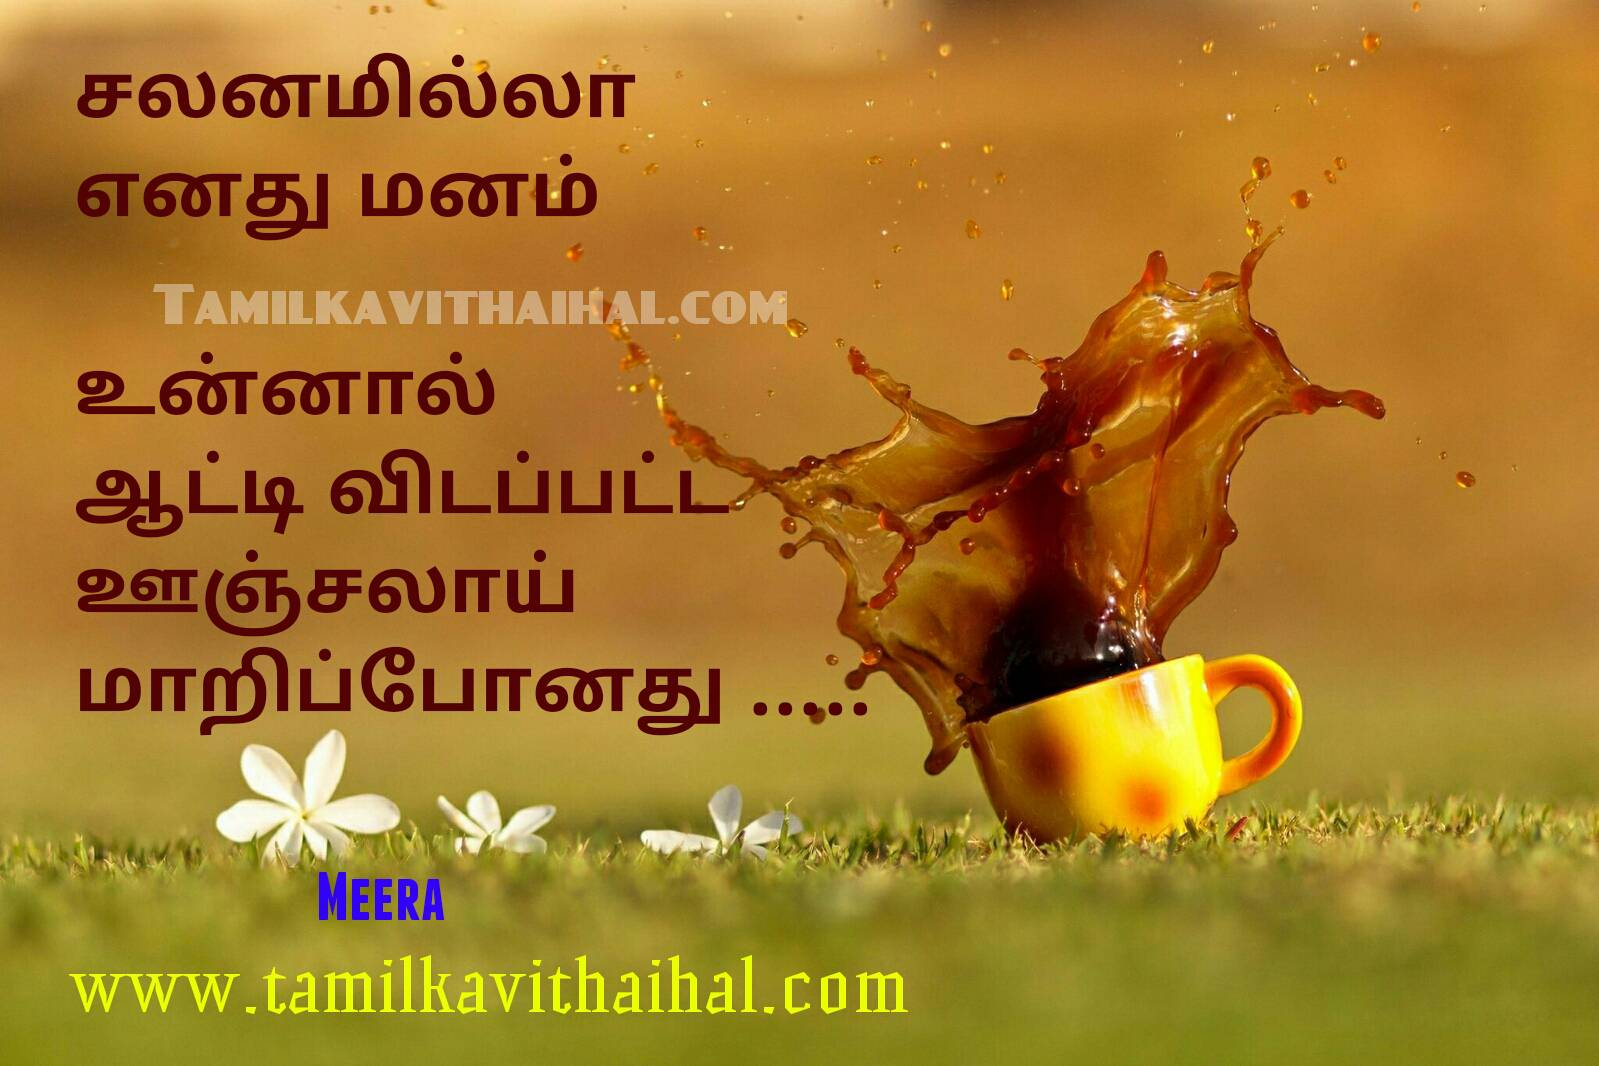 Beautiful about husbend and wife pirivu quotes salanam oonjal manam unnal kanavan manaivi meera poem facebook status